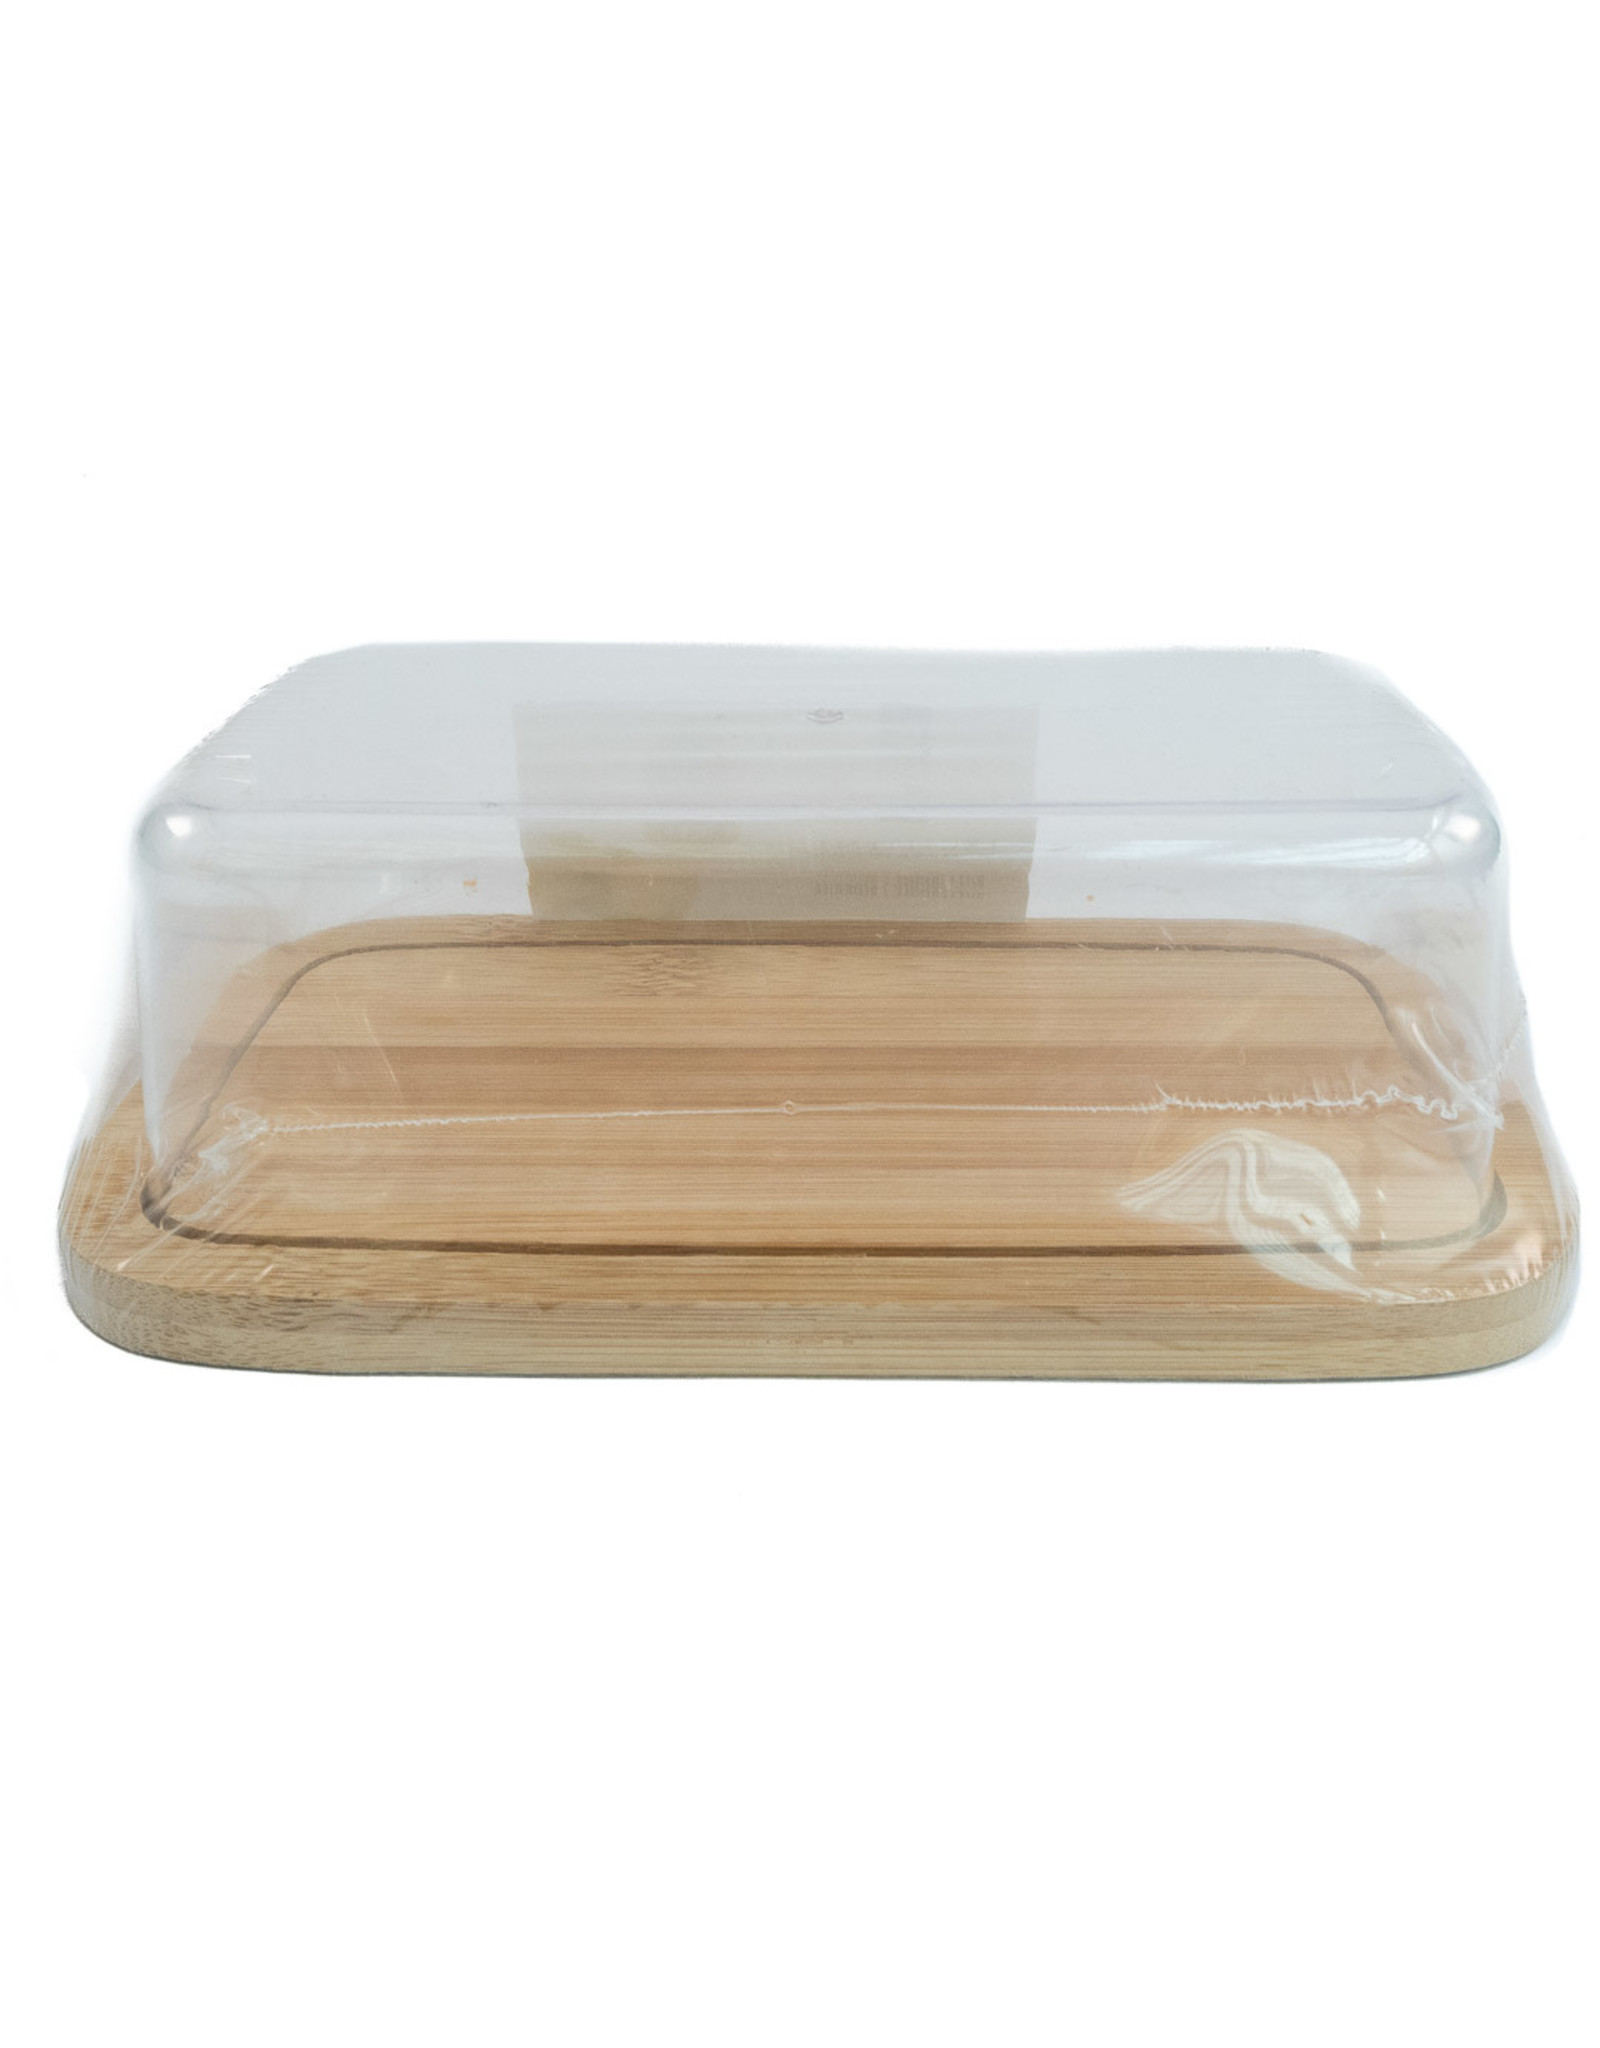 Koopman Butter Dish With Ps Lid